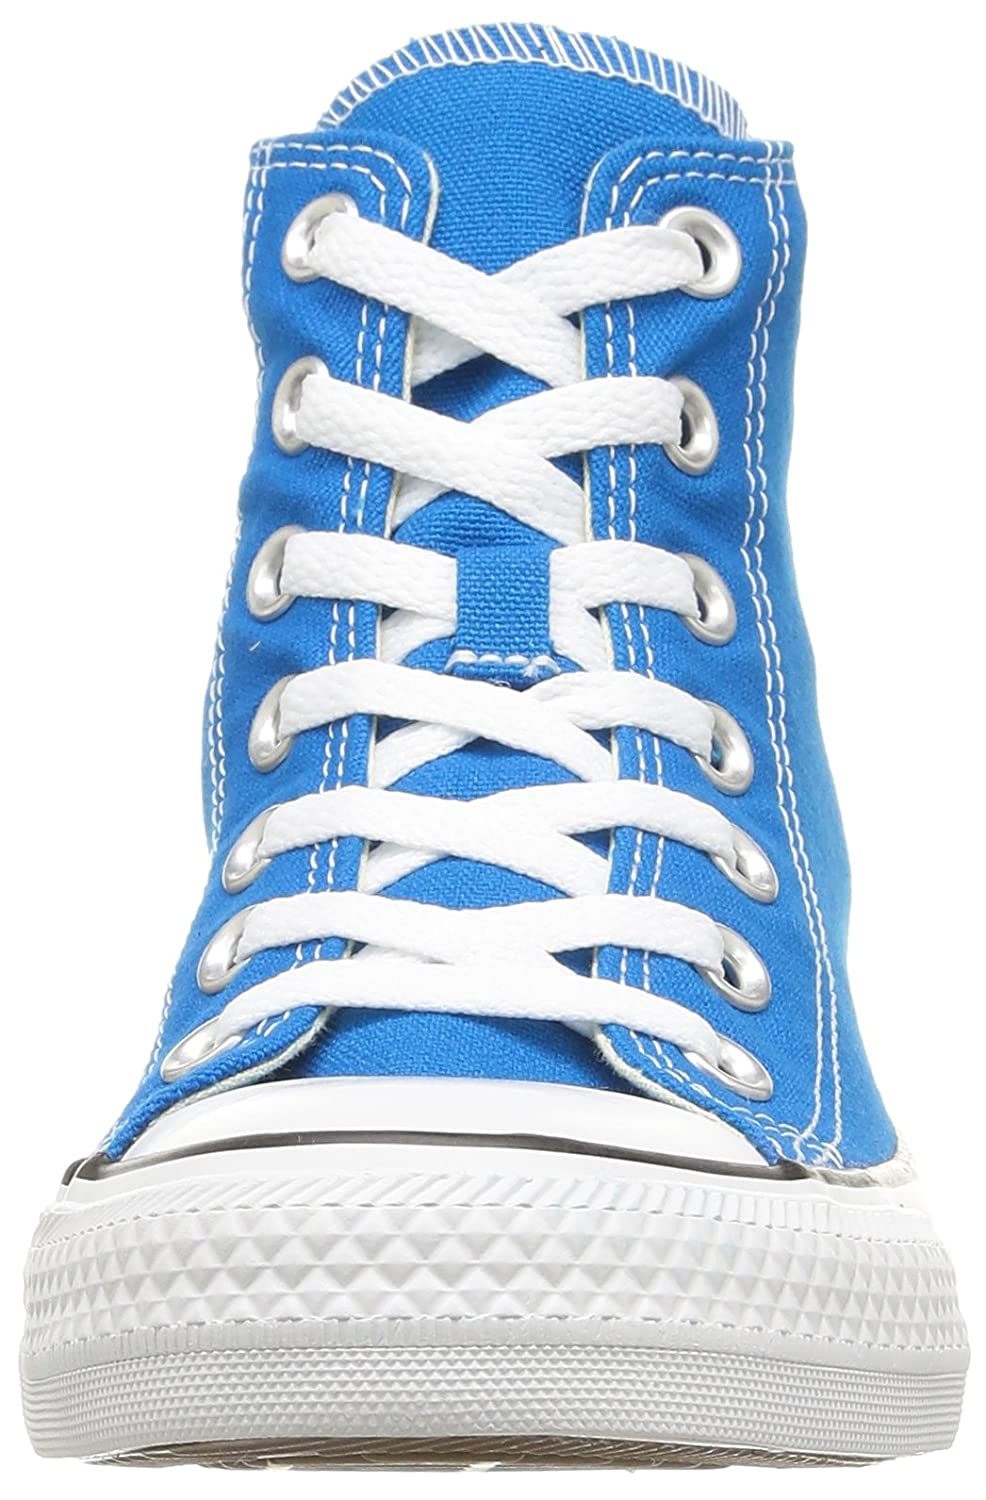 Converse Unisex-Erwachsene Chuck Taylor All Star-Hi High-Top, Schwarz Schwarz High-Top, Blau (Bleu Cyan) a3b597